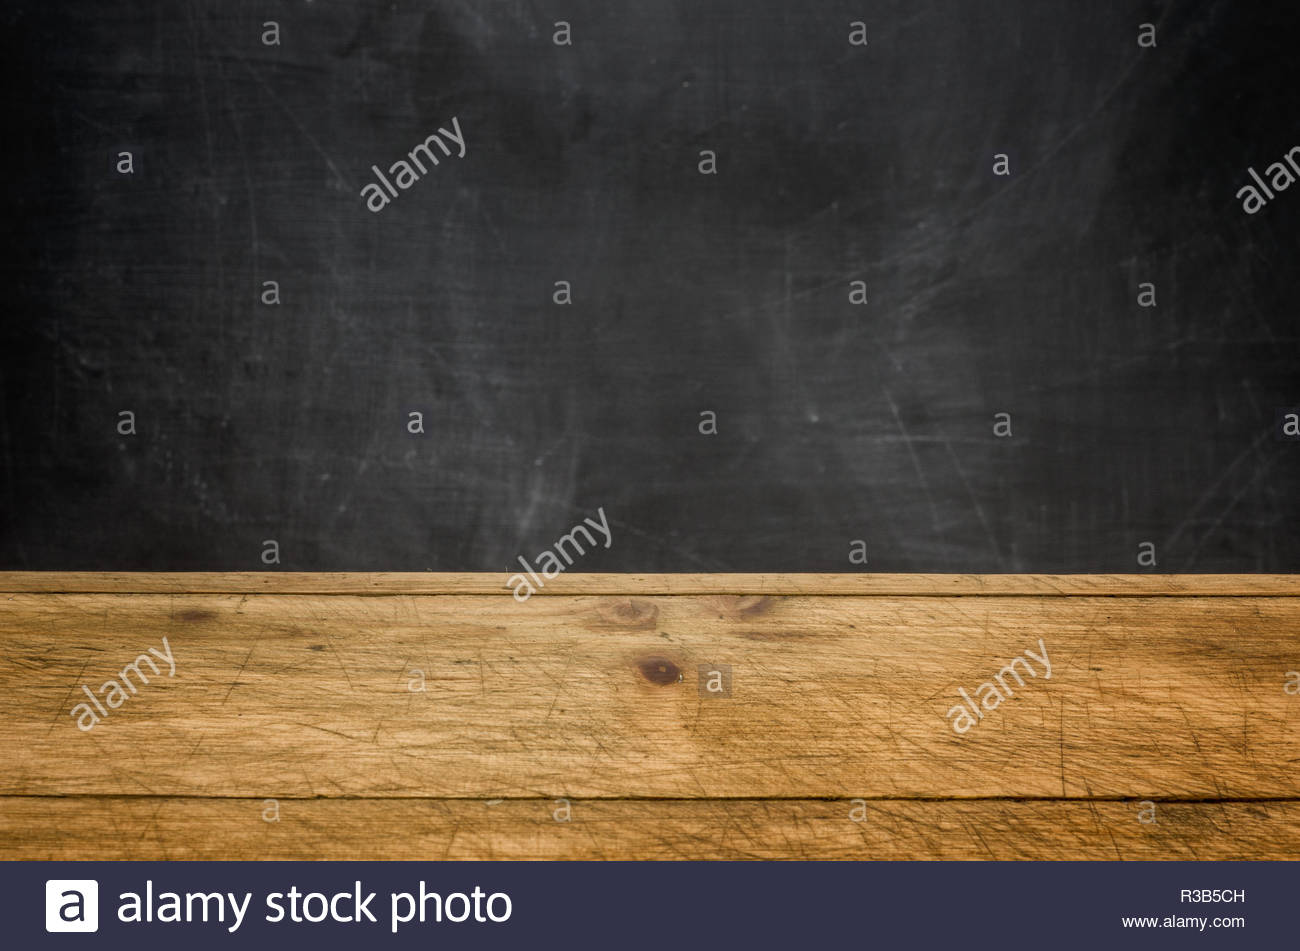 rustic wooden boards against a black wall panel - Stock Image